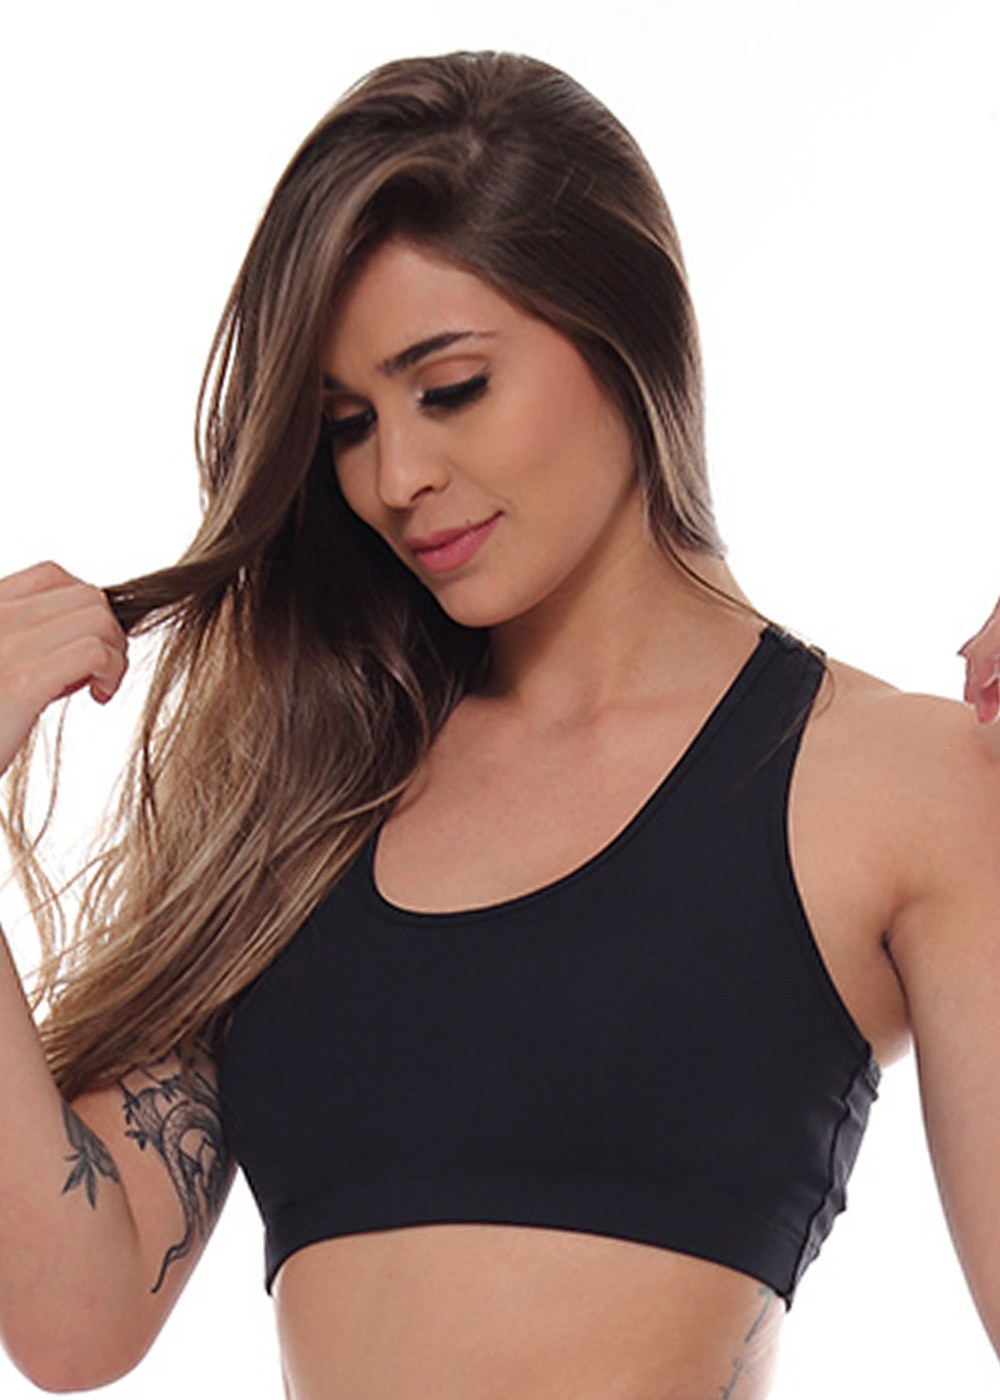 TOP NADADOR JUST FIT - PRETO